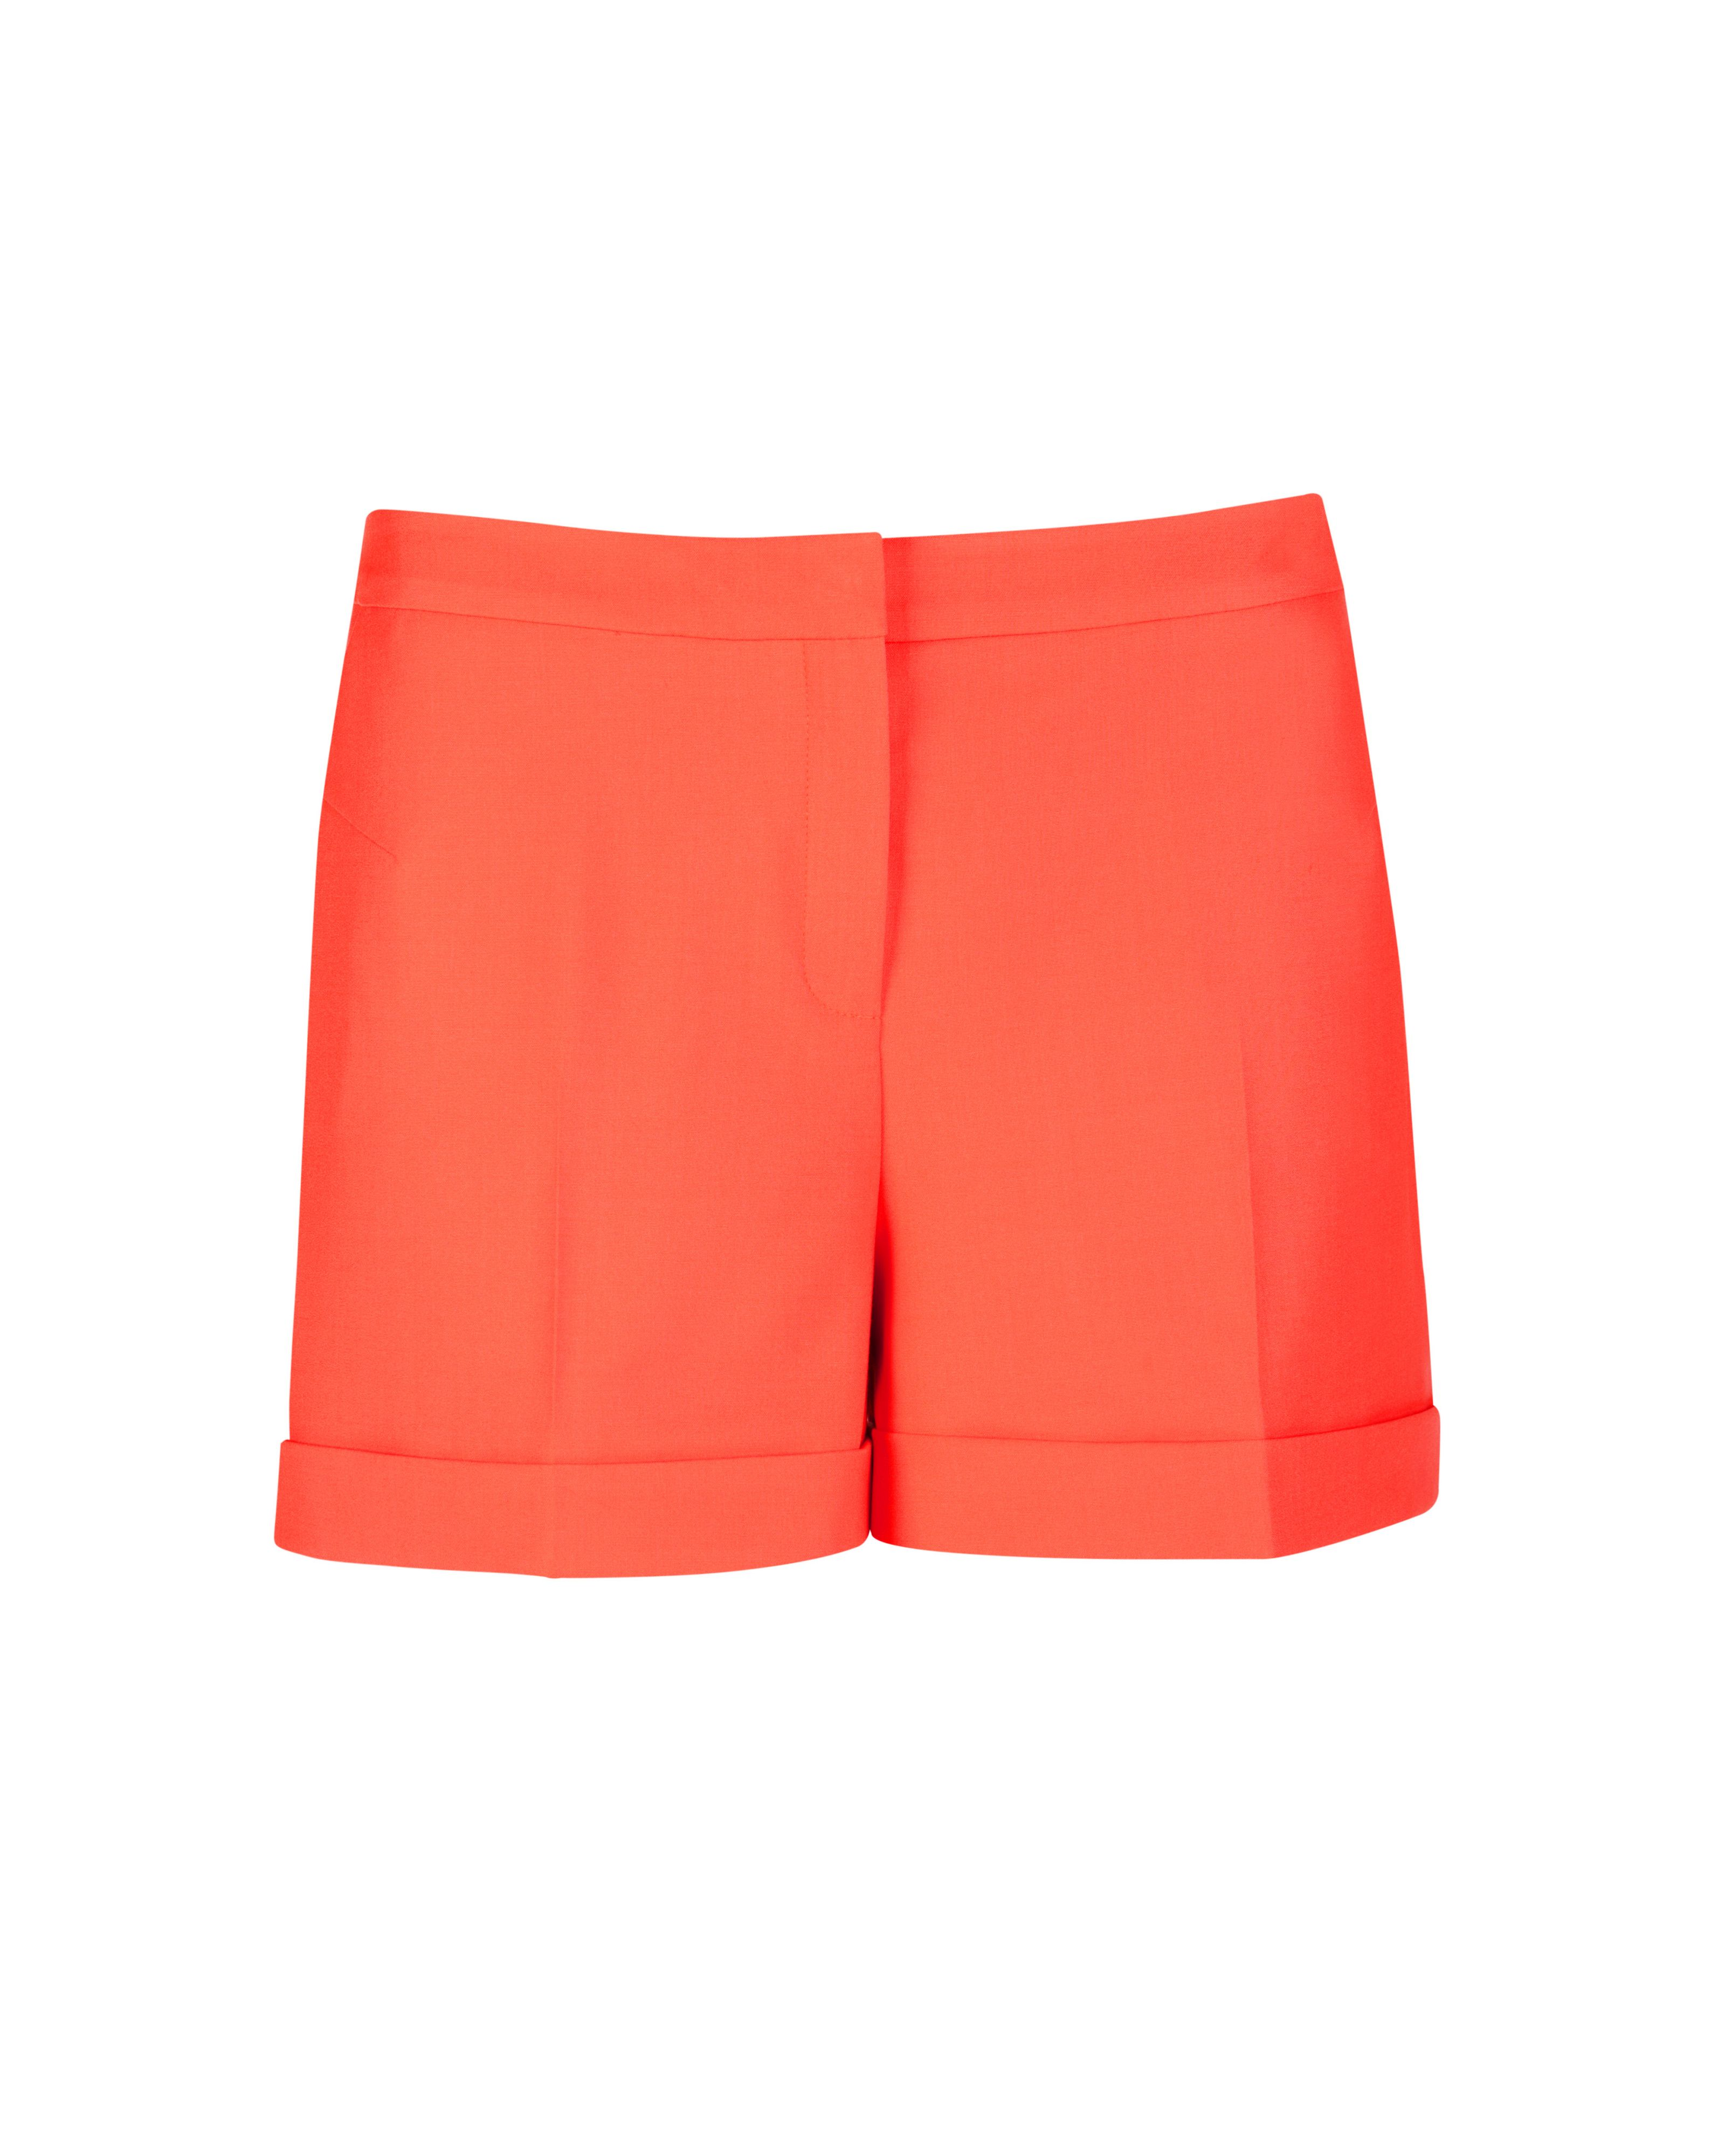 Simitas neon tailored shorts